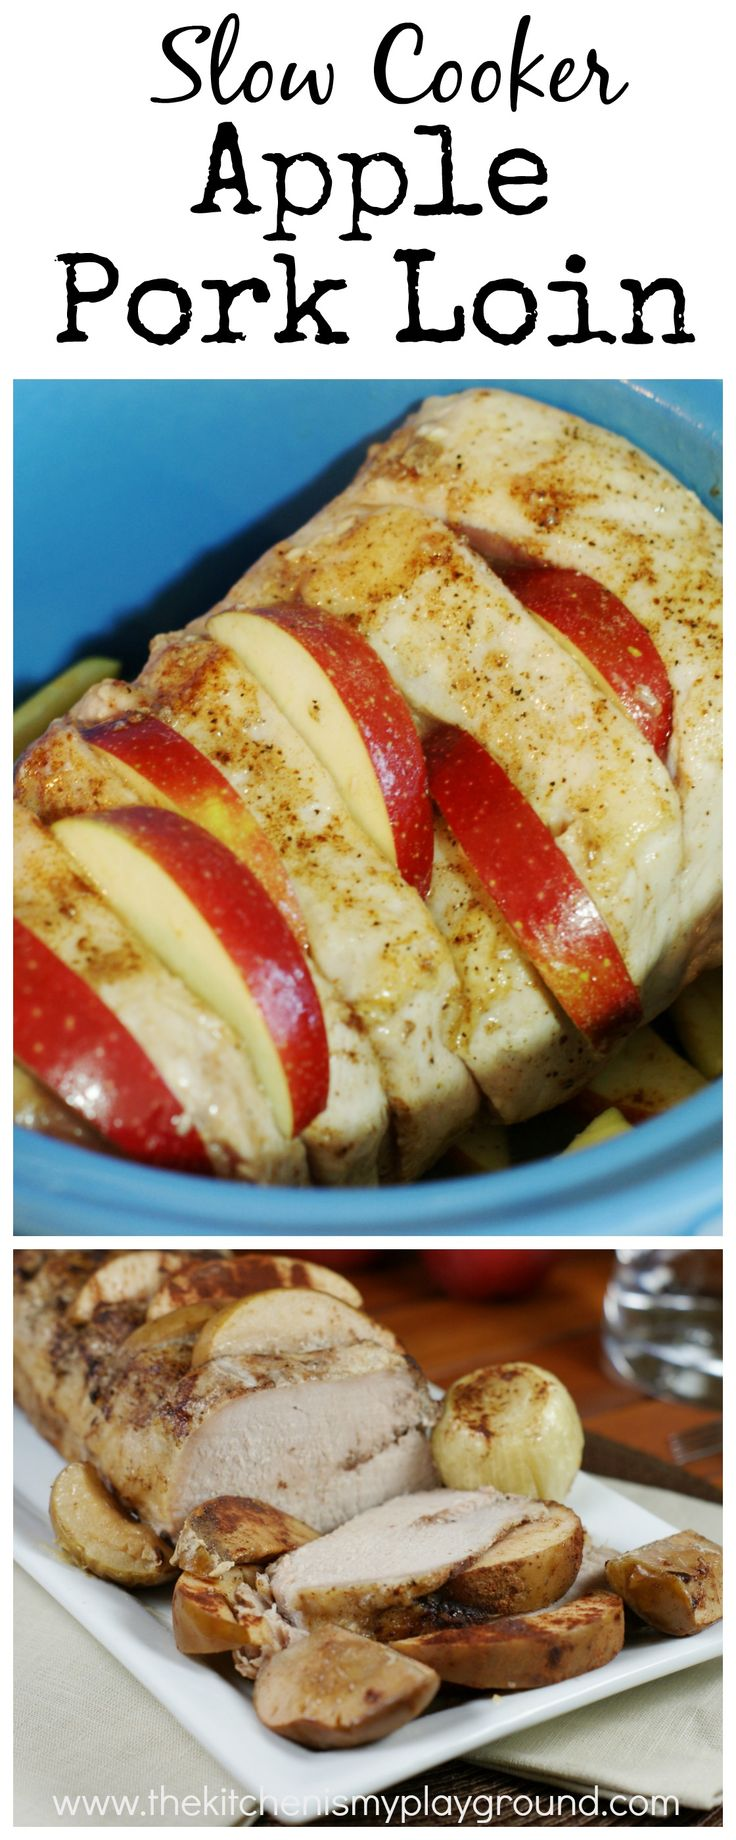 Slow Cooker Apple Cinnamon Pork Loin - easy Fall comfort food!   www.thekitchenismyplayground.com